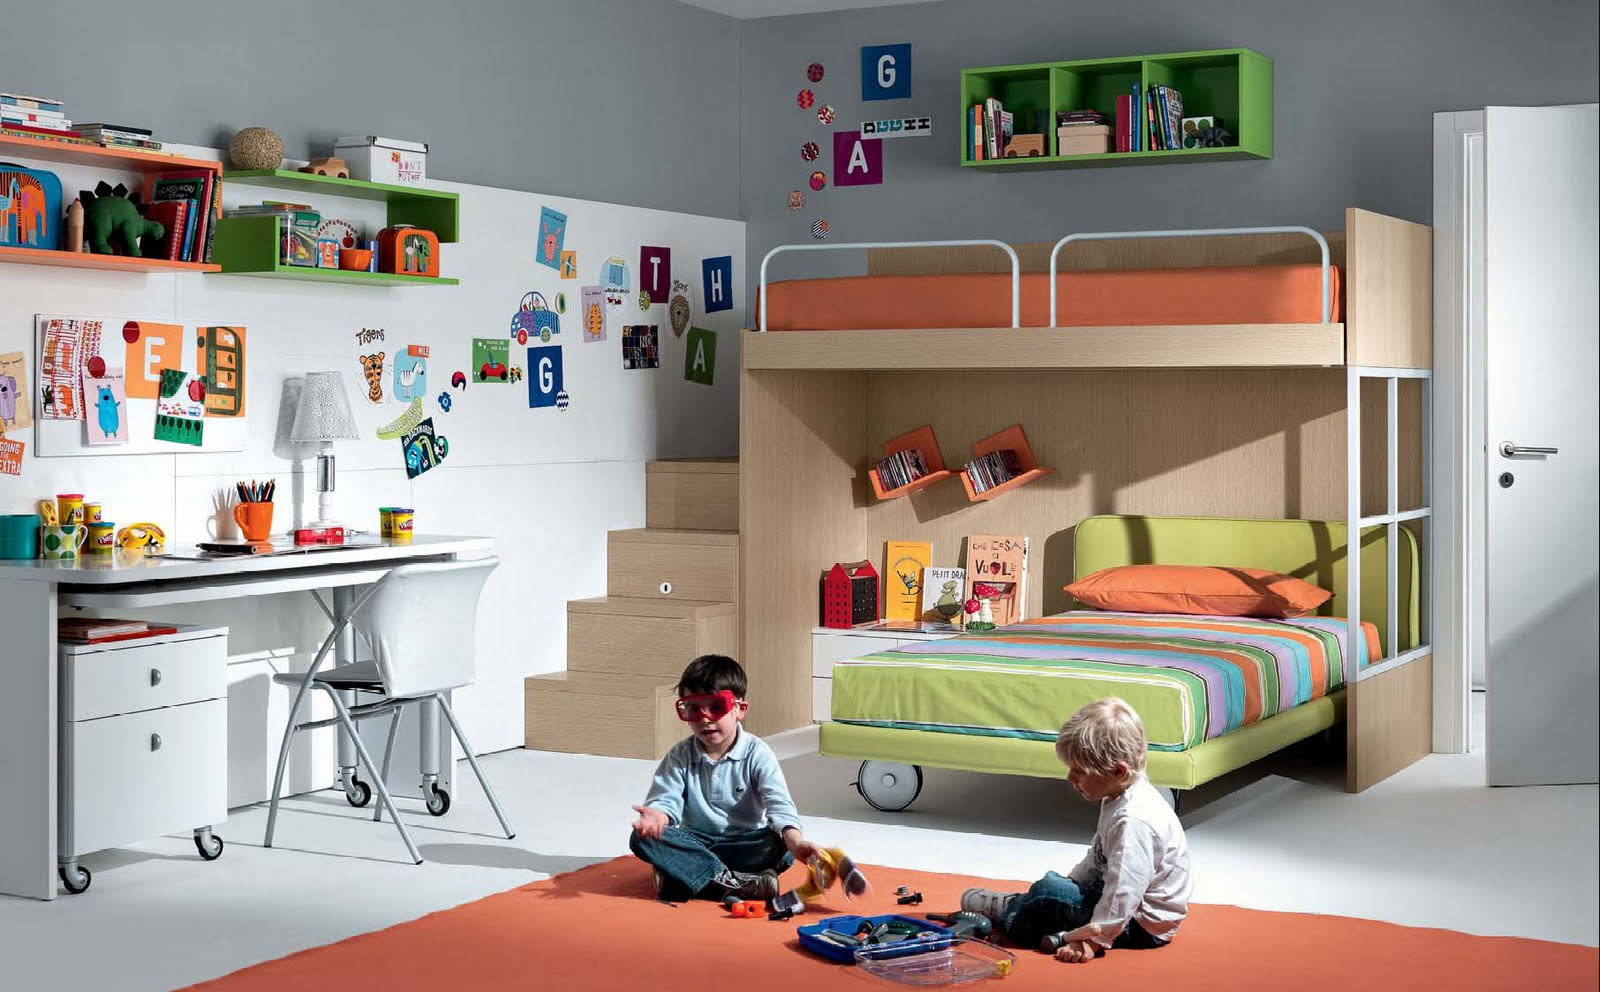 Decoraci n de cuartos infantiles un reto asequible hoy for Ideas decoracion habitaciones bebes